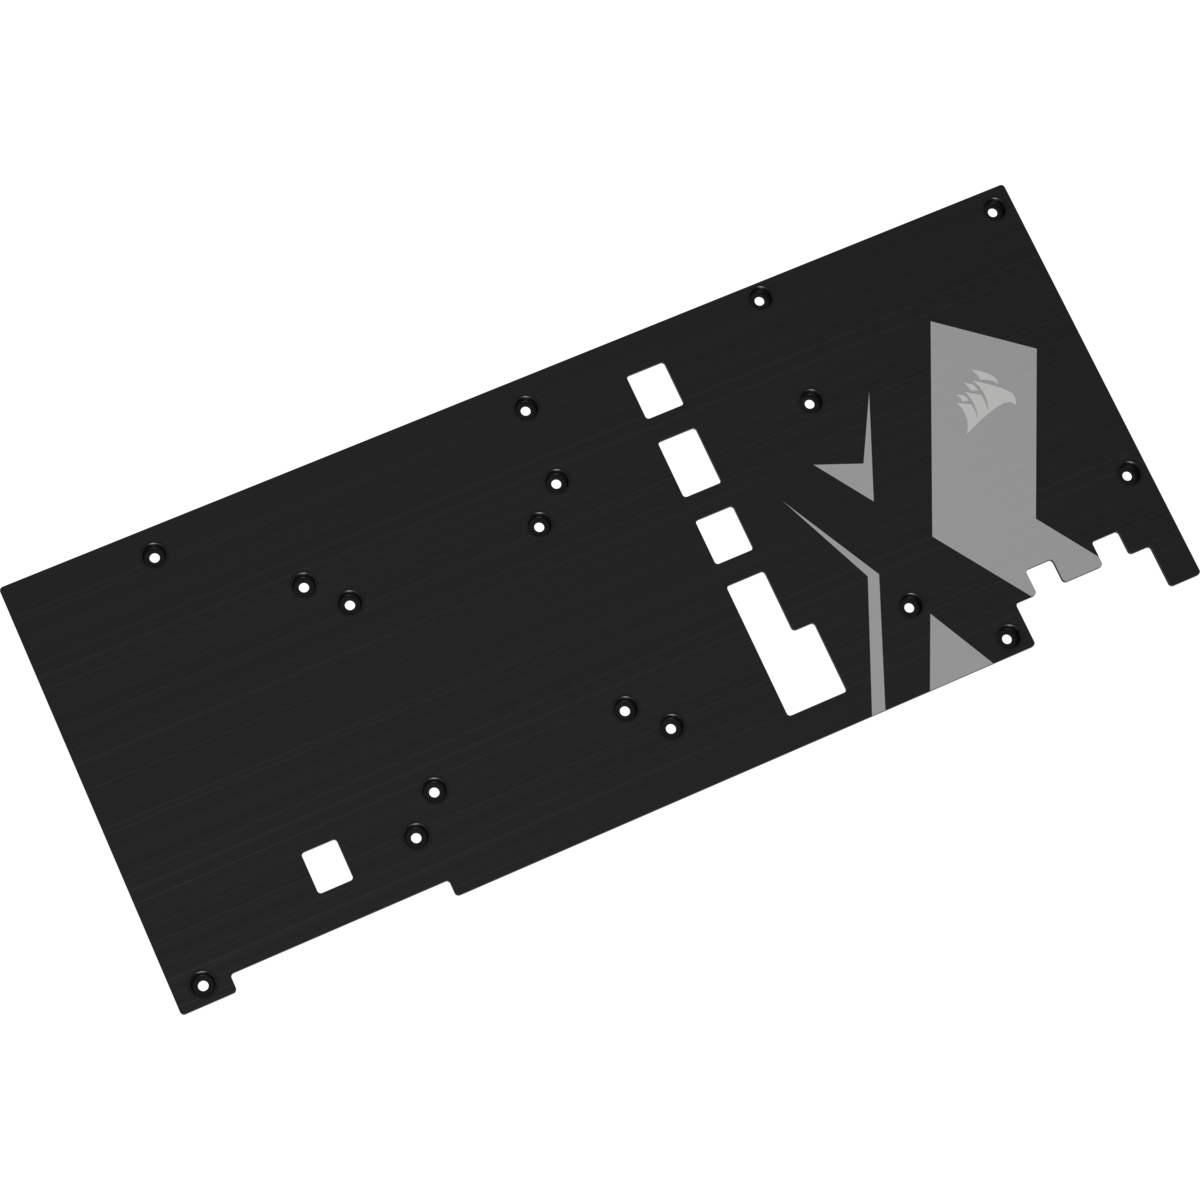 Block Vga Corsair Hydro X Series XG7 RGB 20-SERIES GPU Water Block (2080 Strix)